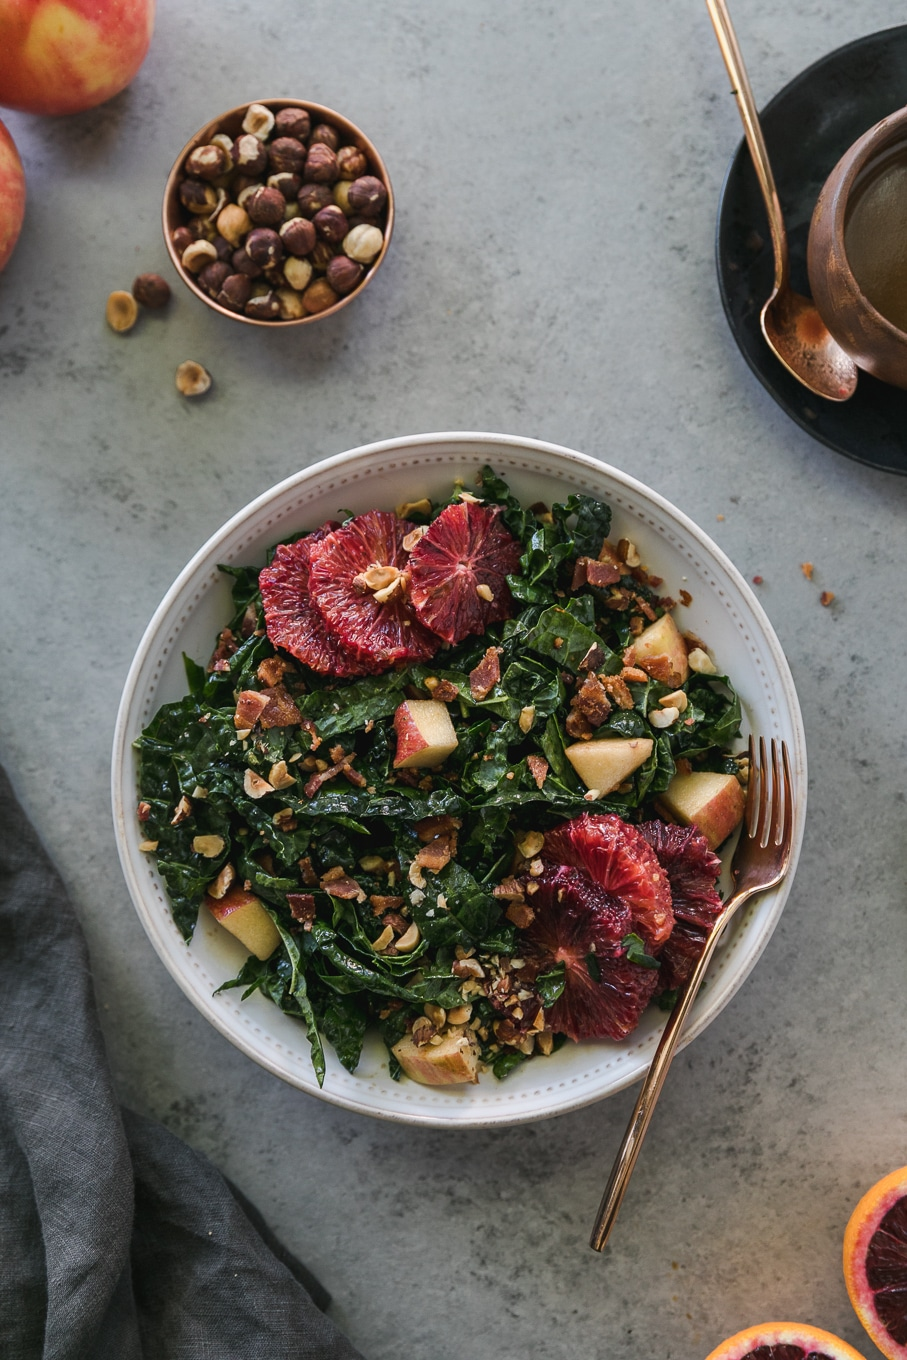 Overhead shot of a bowl of kale salad with blood oranges, apples, chopped bacon, and hazelnuts with a gold fork resting in the bowl and a ramekin of hazelnuts above it as well as a bowl of dressing on a small plate with a gold spoon